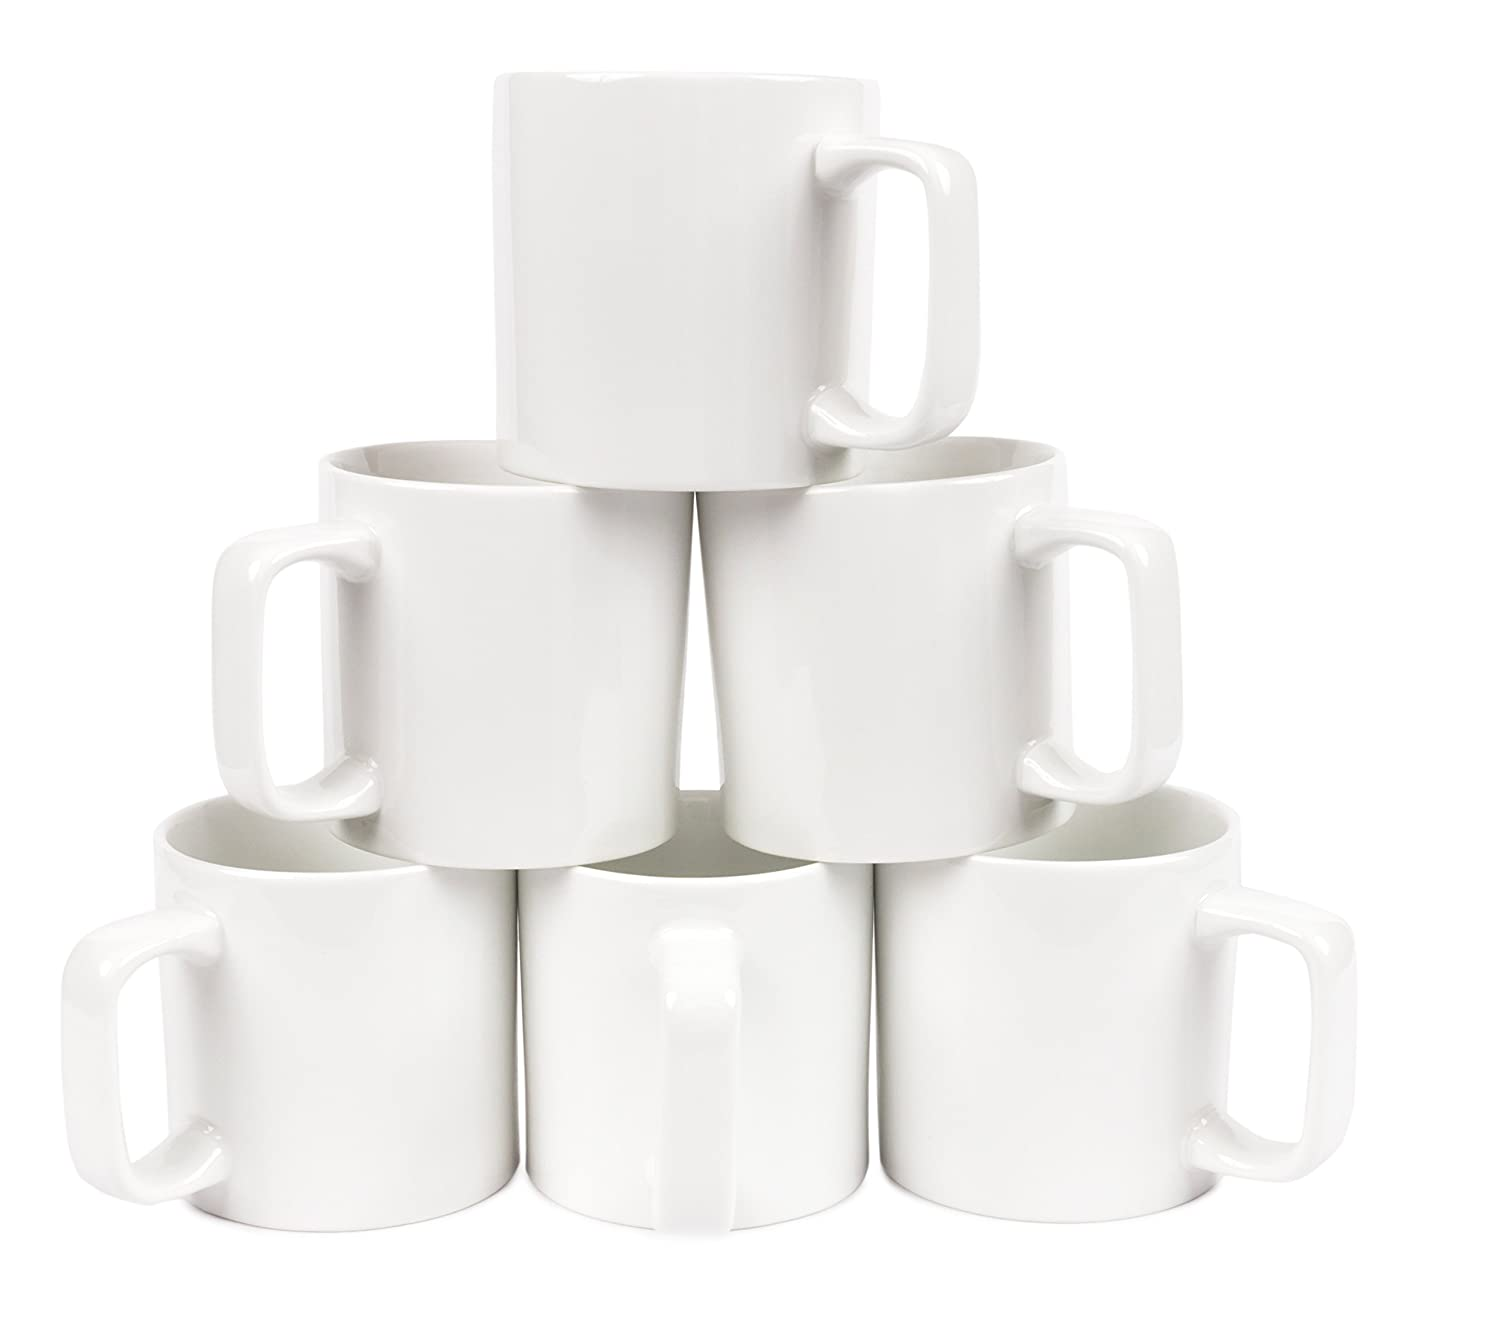 Oxford Gourmet Large Coffee/Tea Mug Set (6 Pcs) (White)